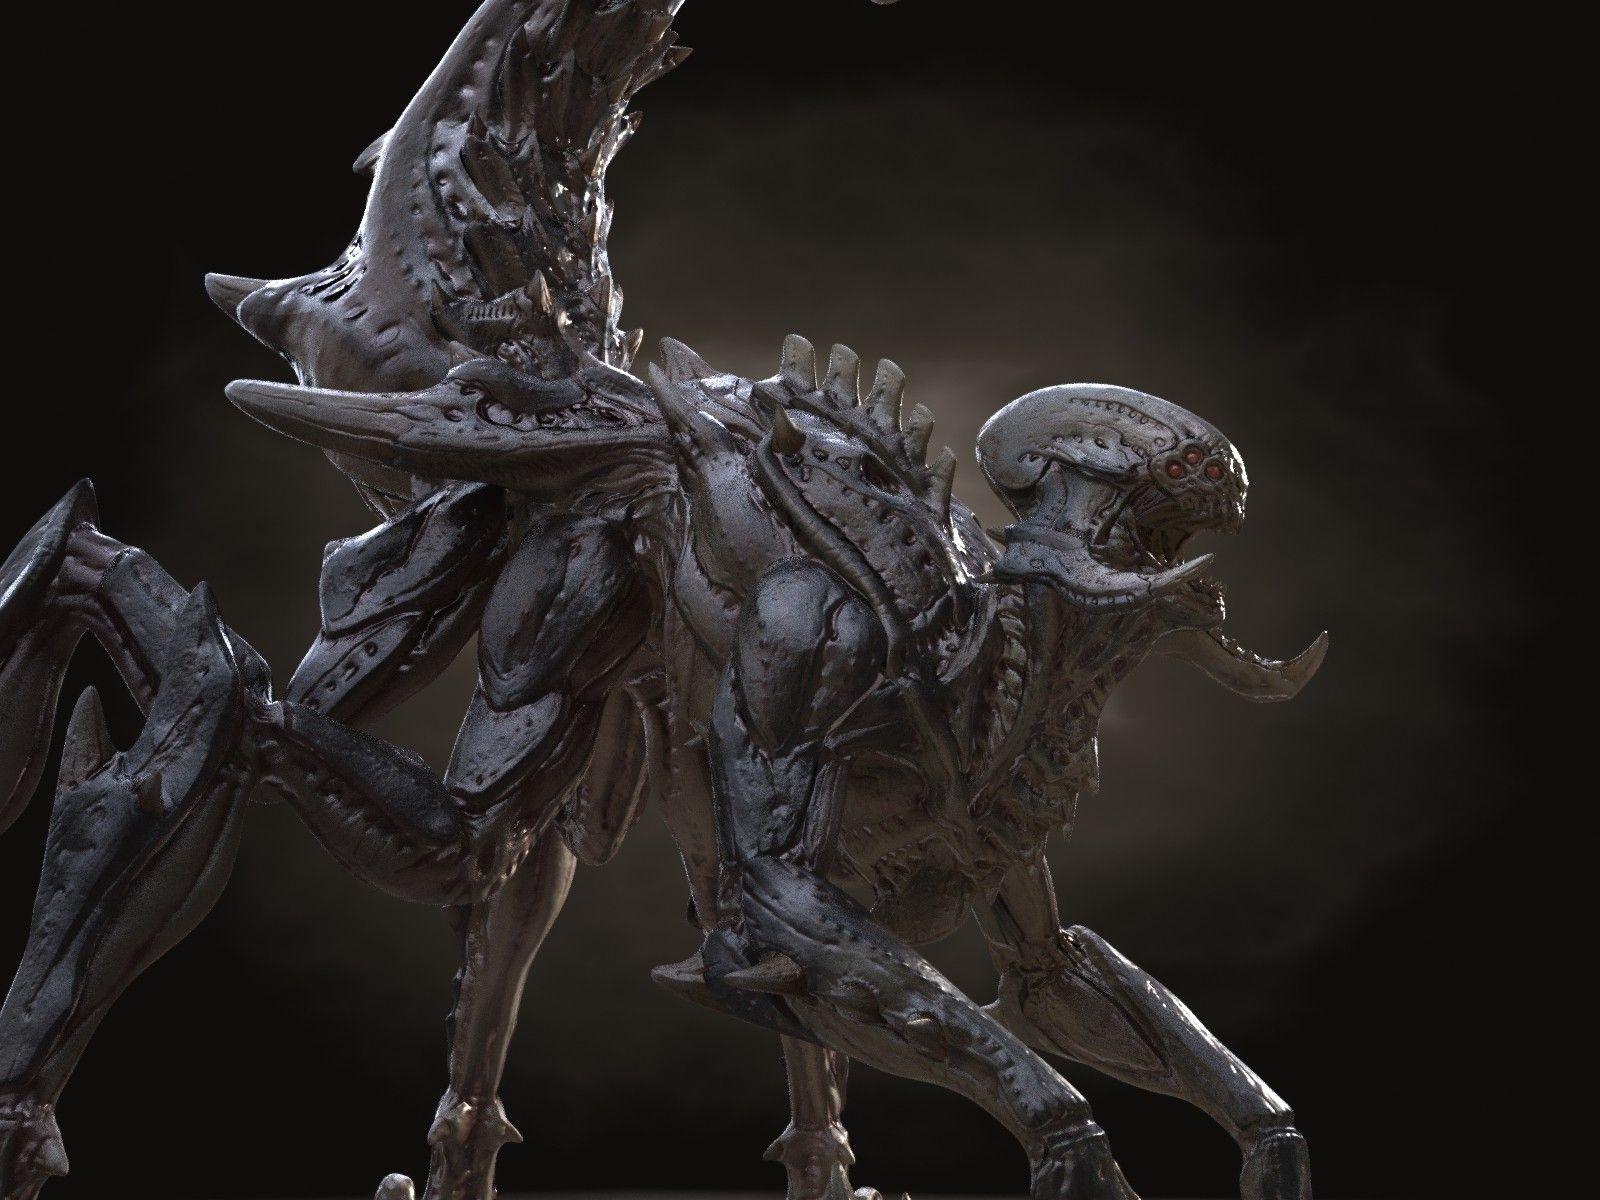 Xenomorph Vs Zerg The gallery for...